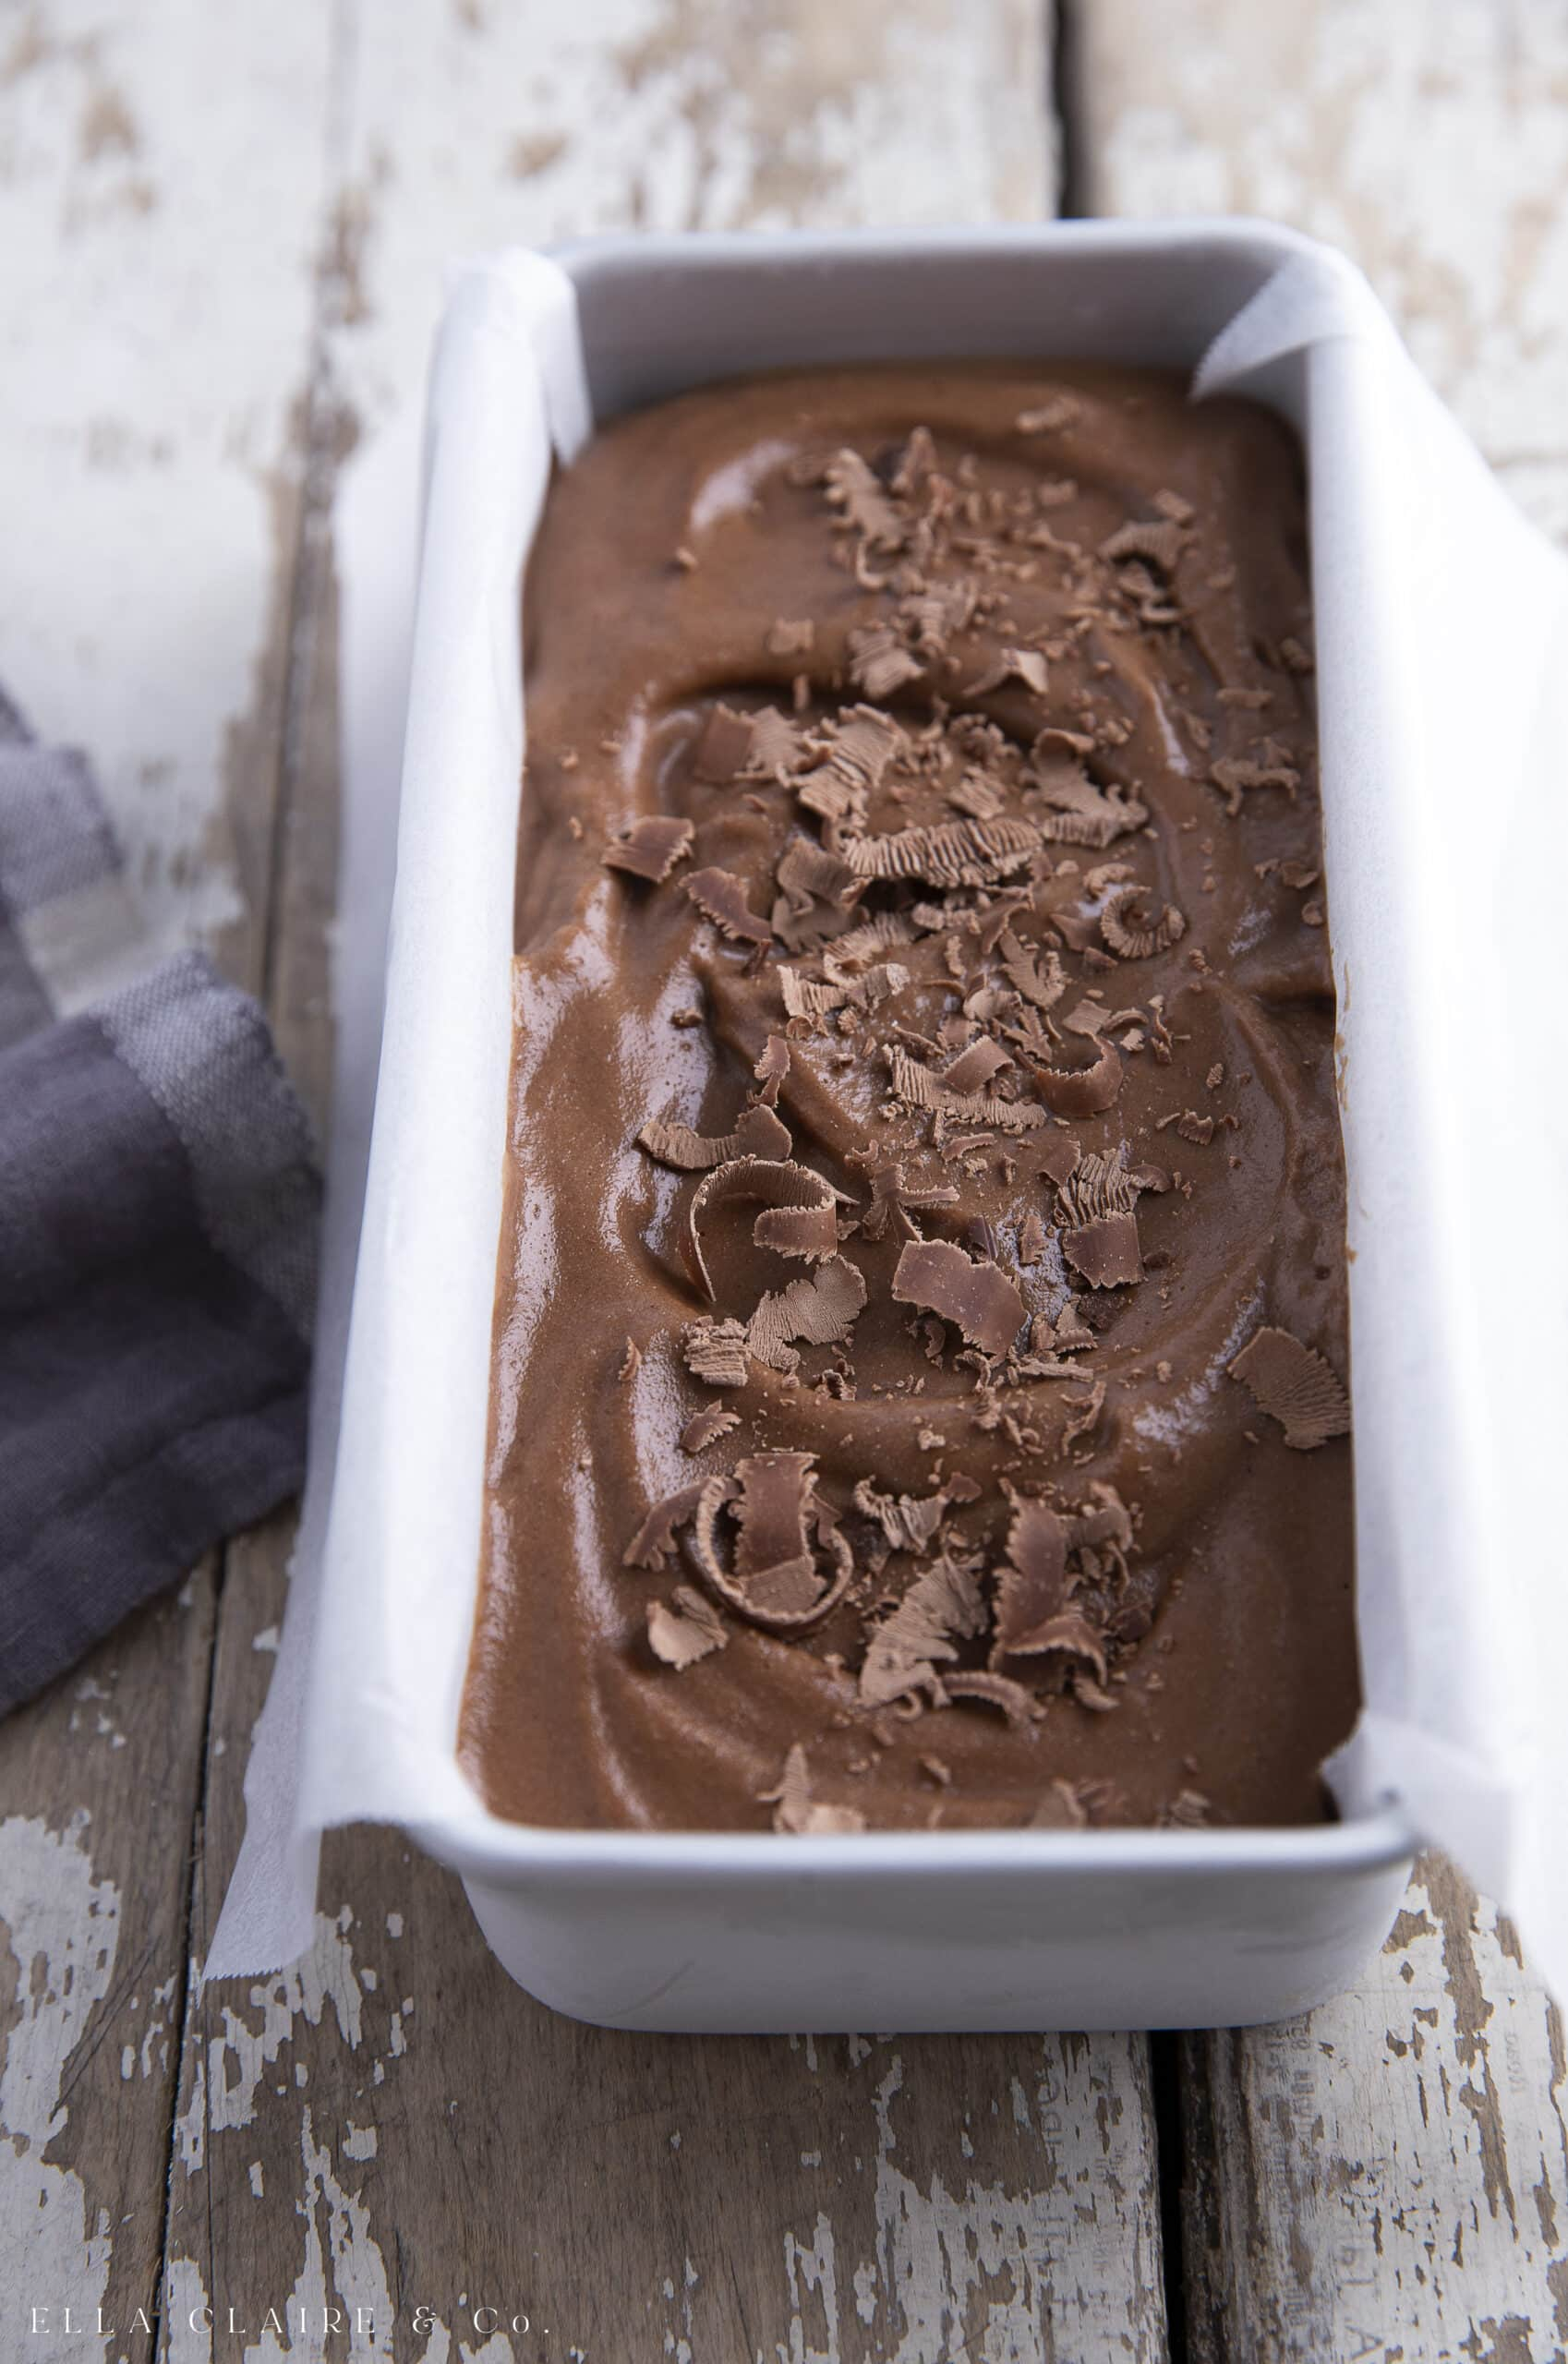 chocolate ice cream made with bananas